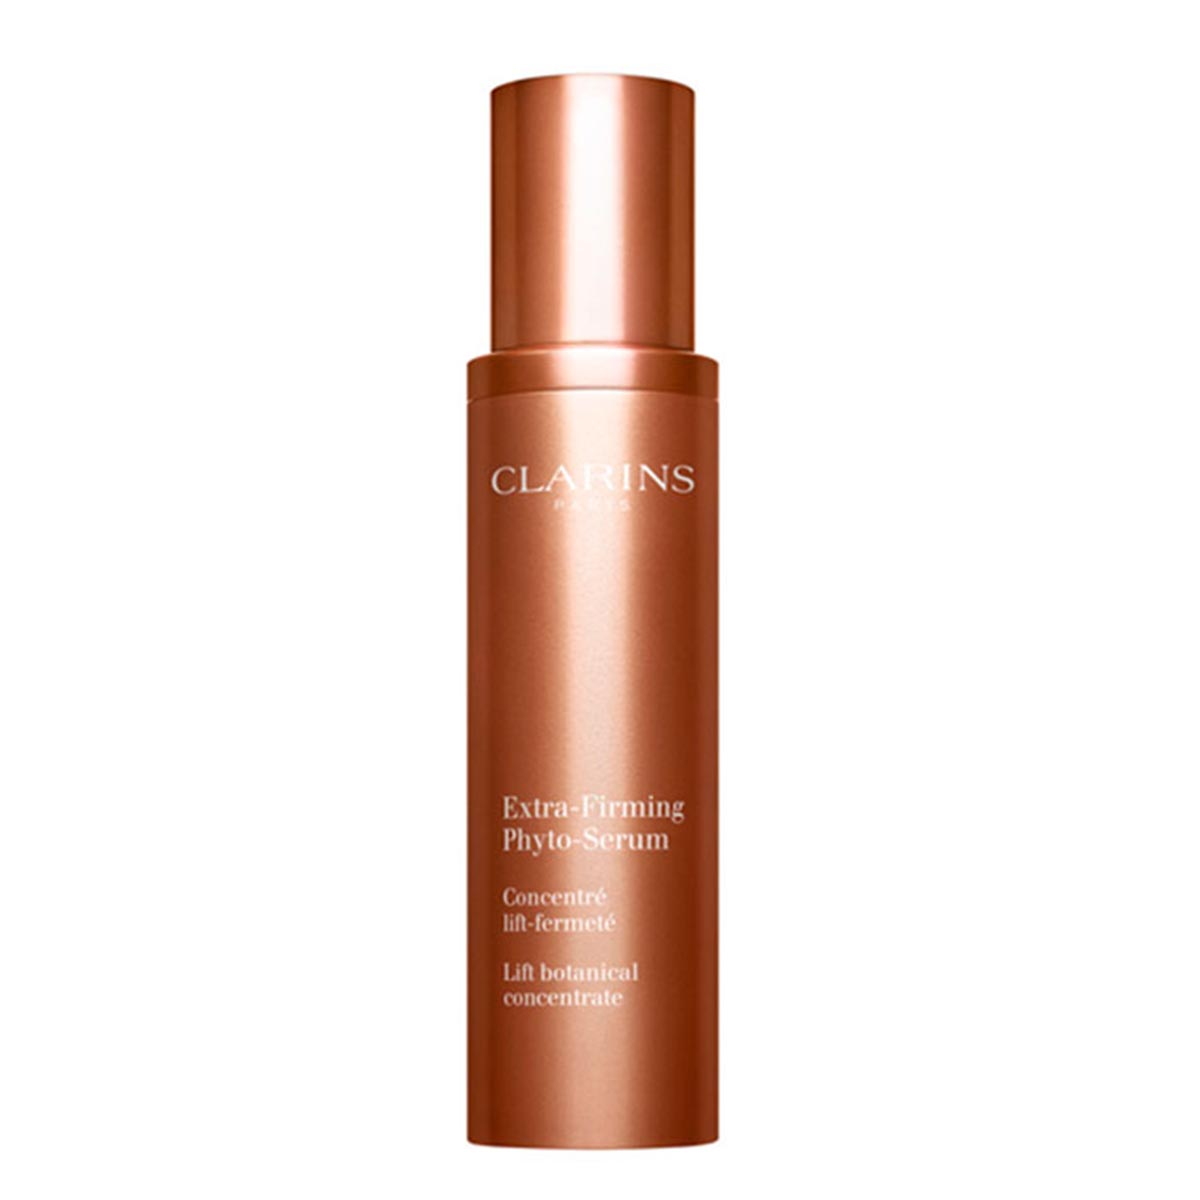 Clarins extra firming phyto serum 50ml